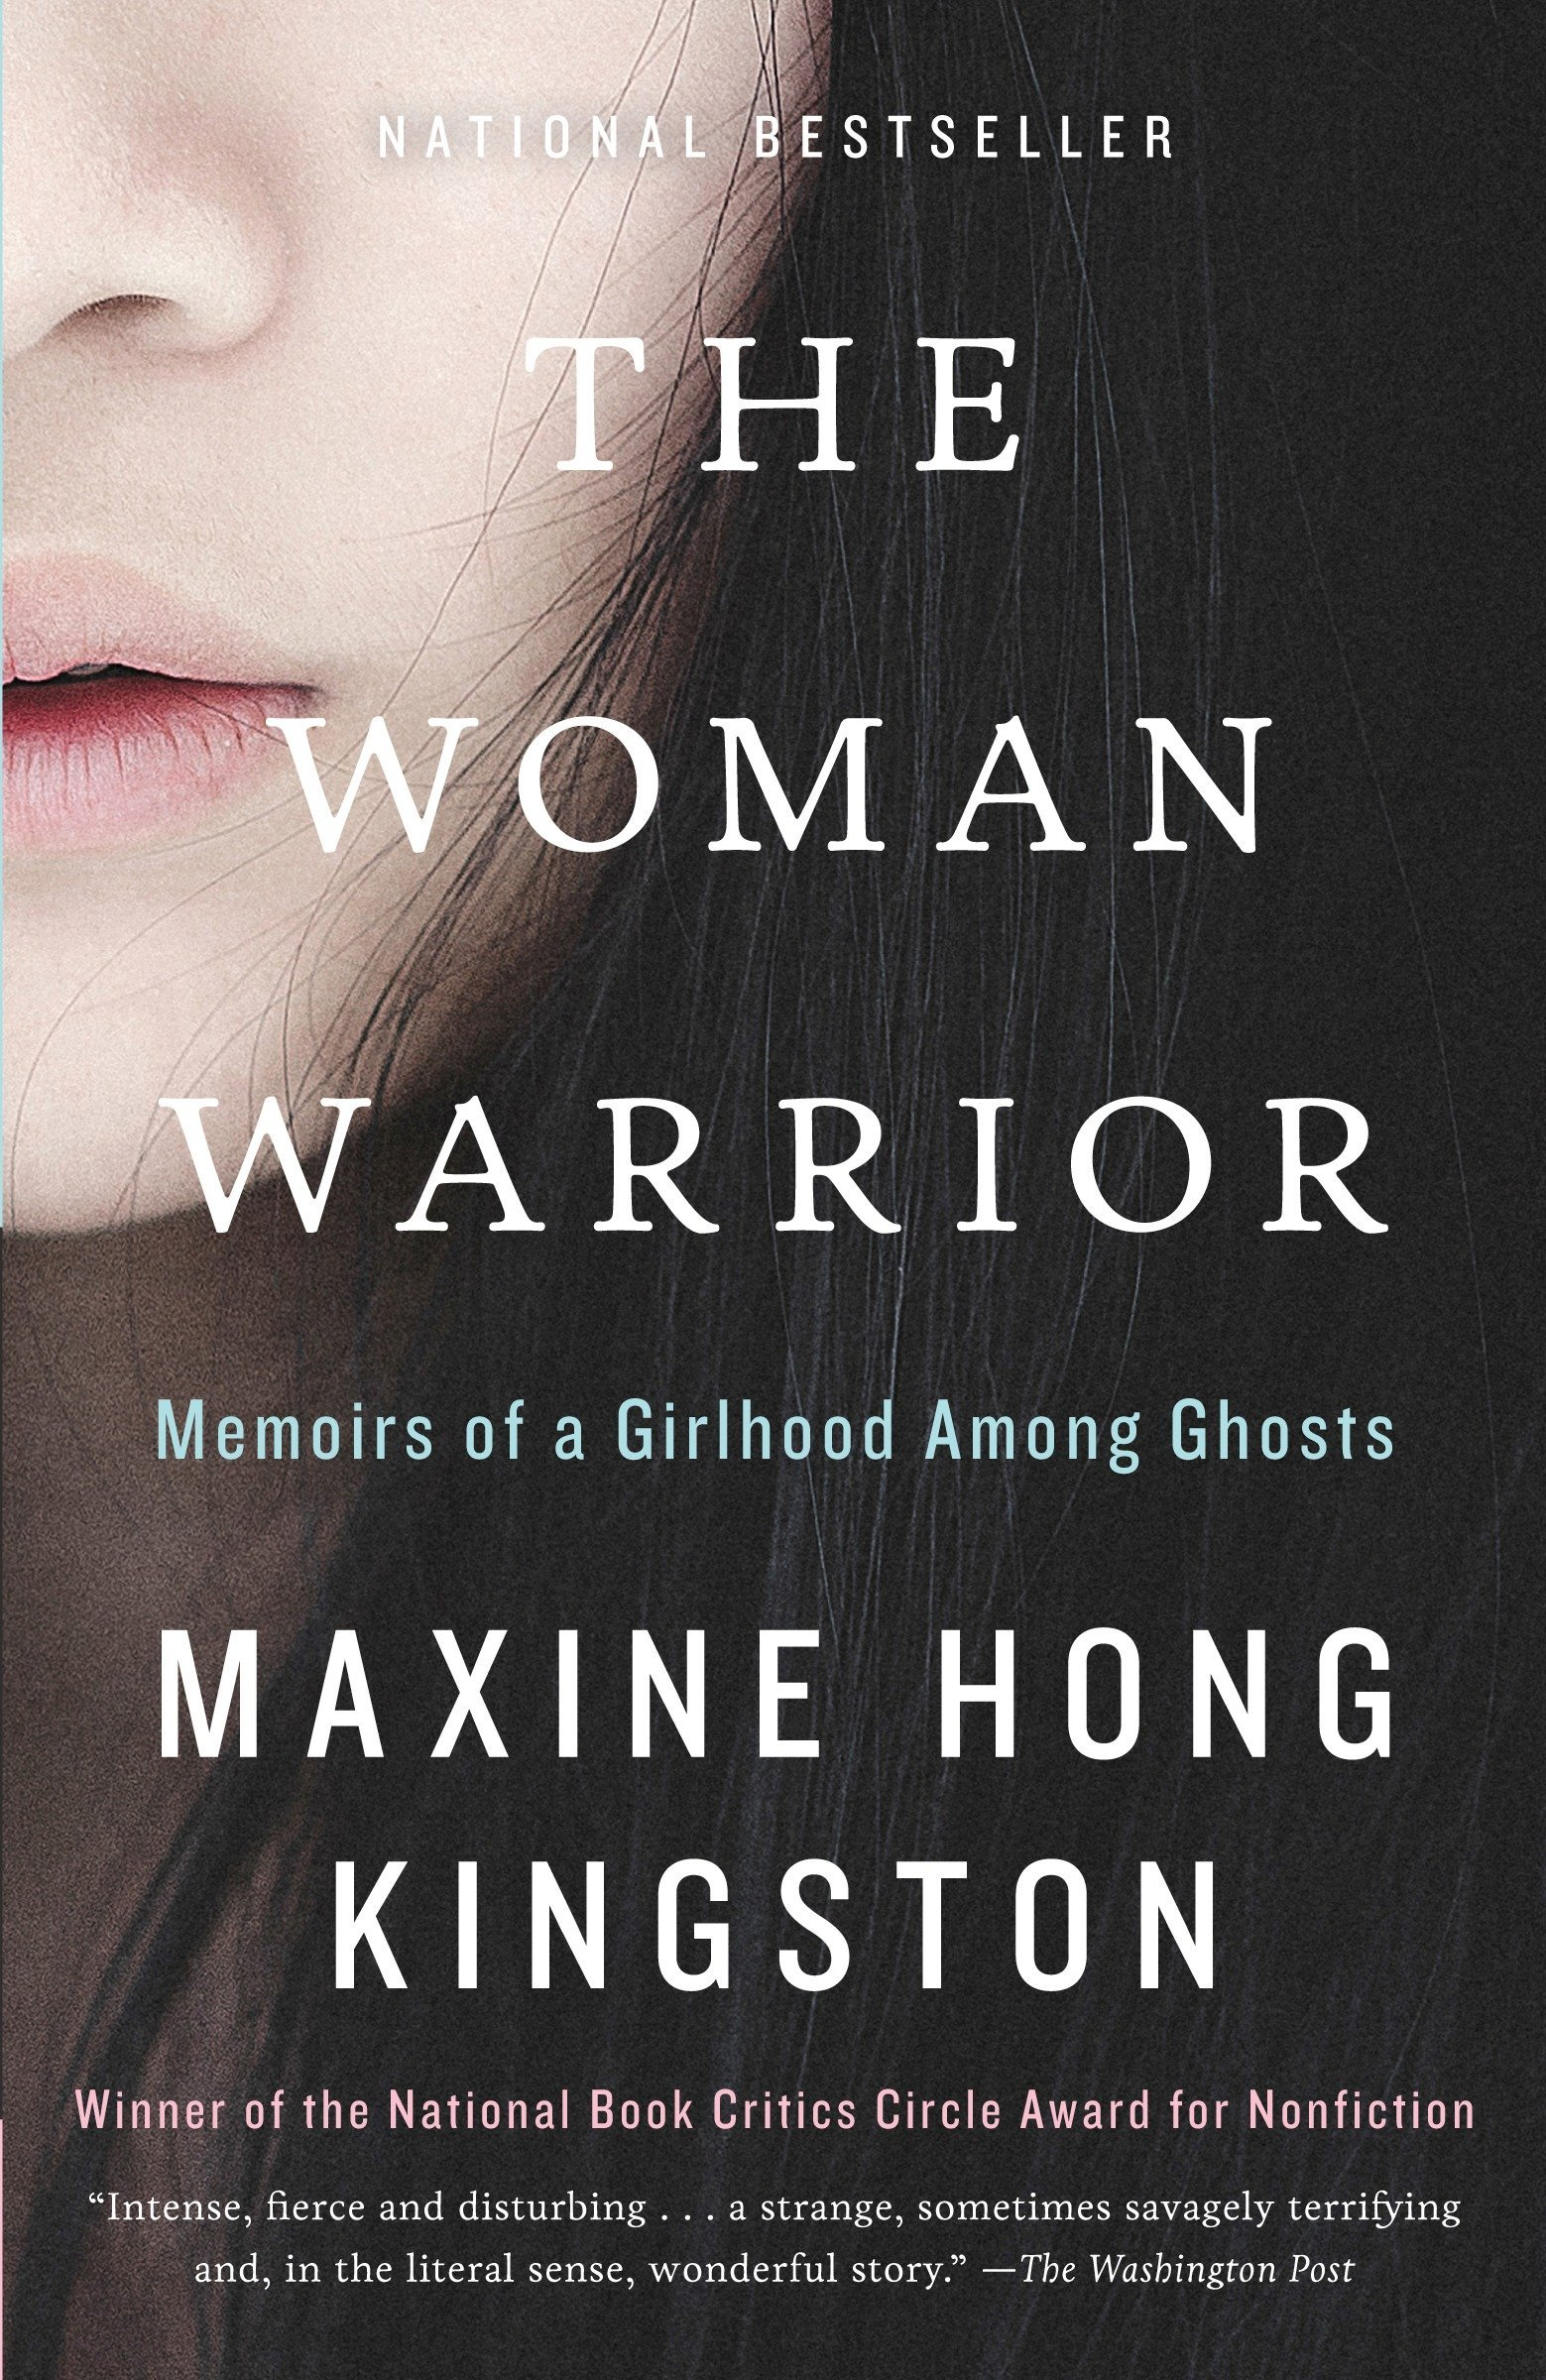 The Woman Warrior: Memoirs of a Girlhood among Ghosts (Vintage  International): Amazon.co.uk: Kingston, Maxine Hong: 0000679721886: Books